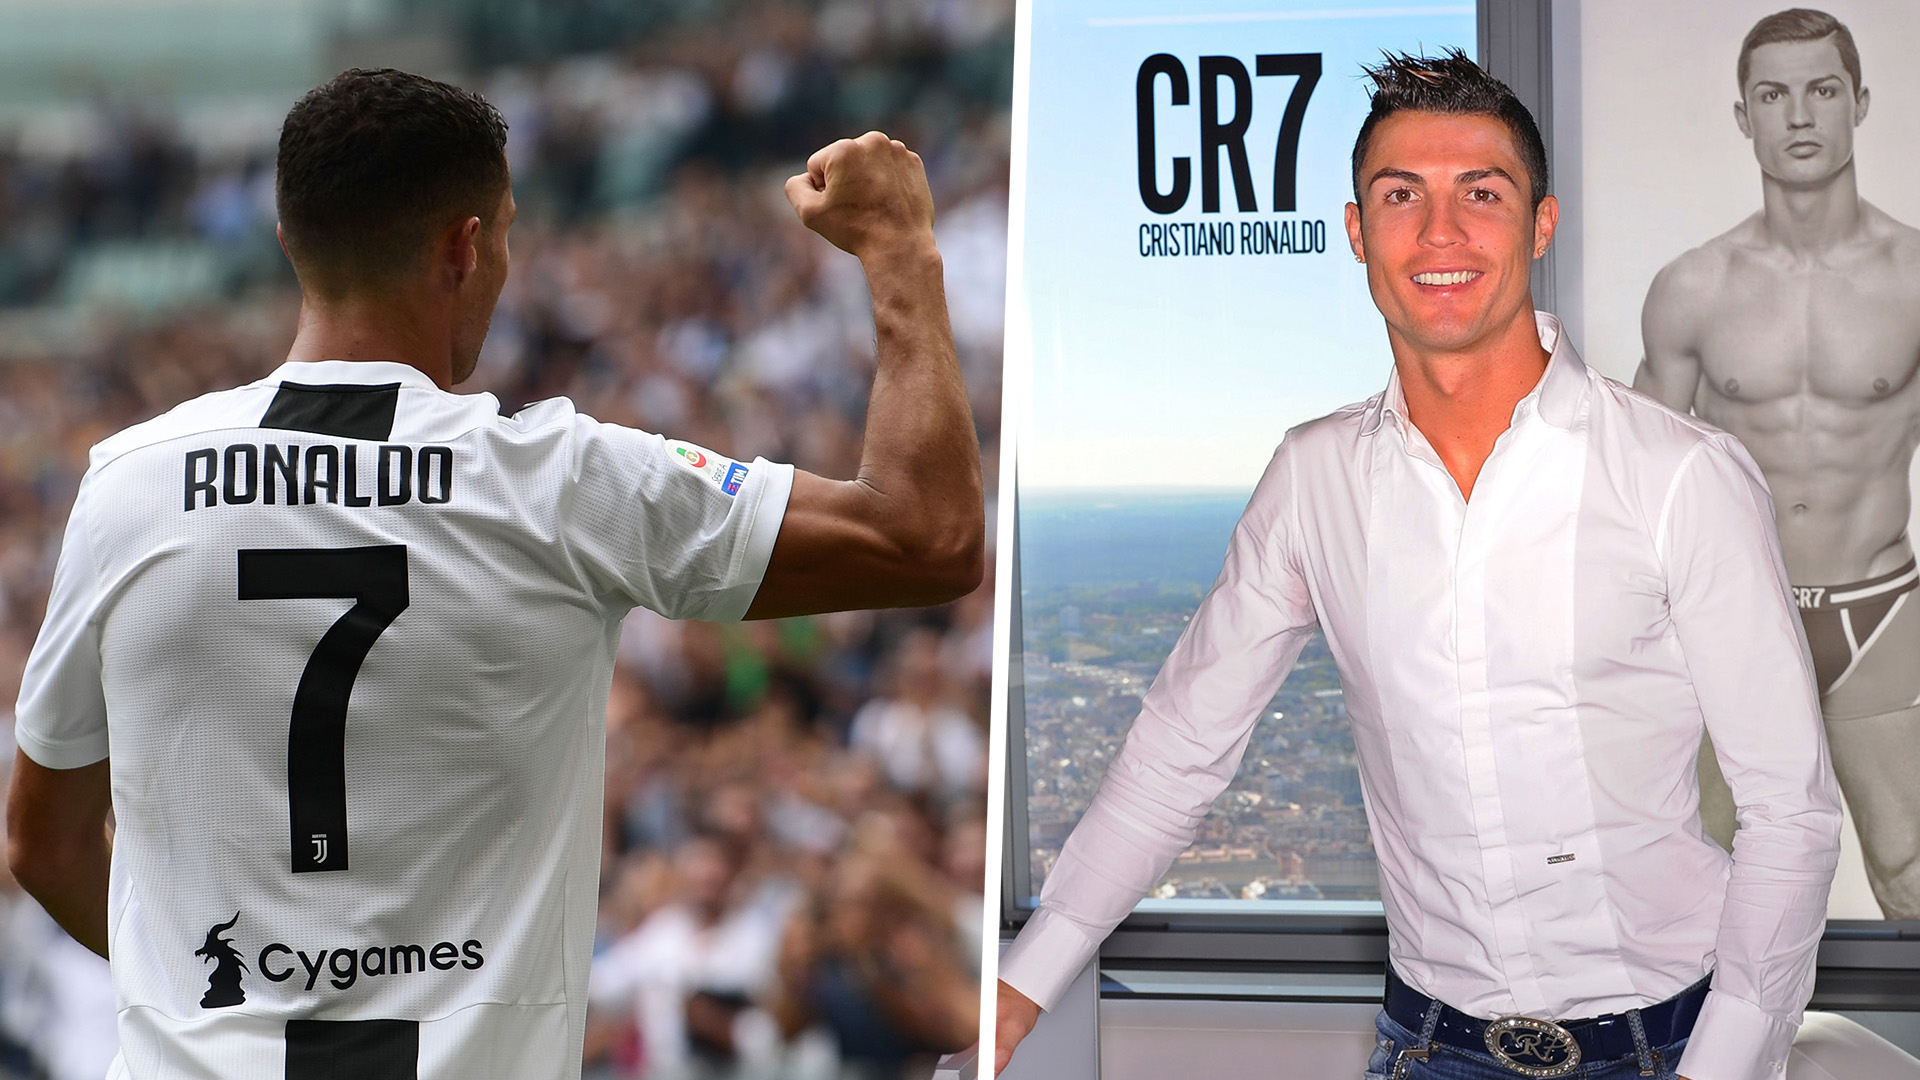 explained why cristiano ronaldo is called cr7 goal com why cristiano ronaldo is called cr7